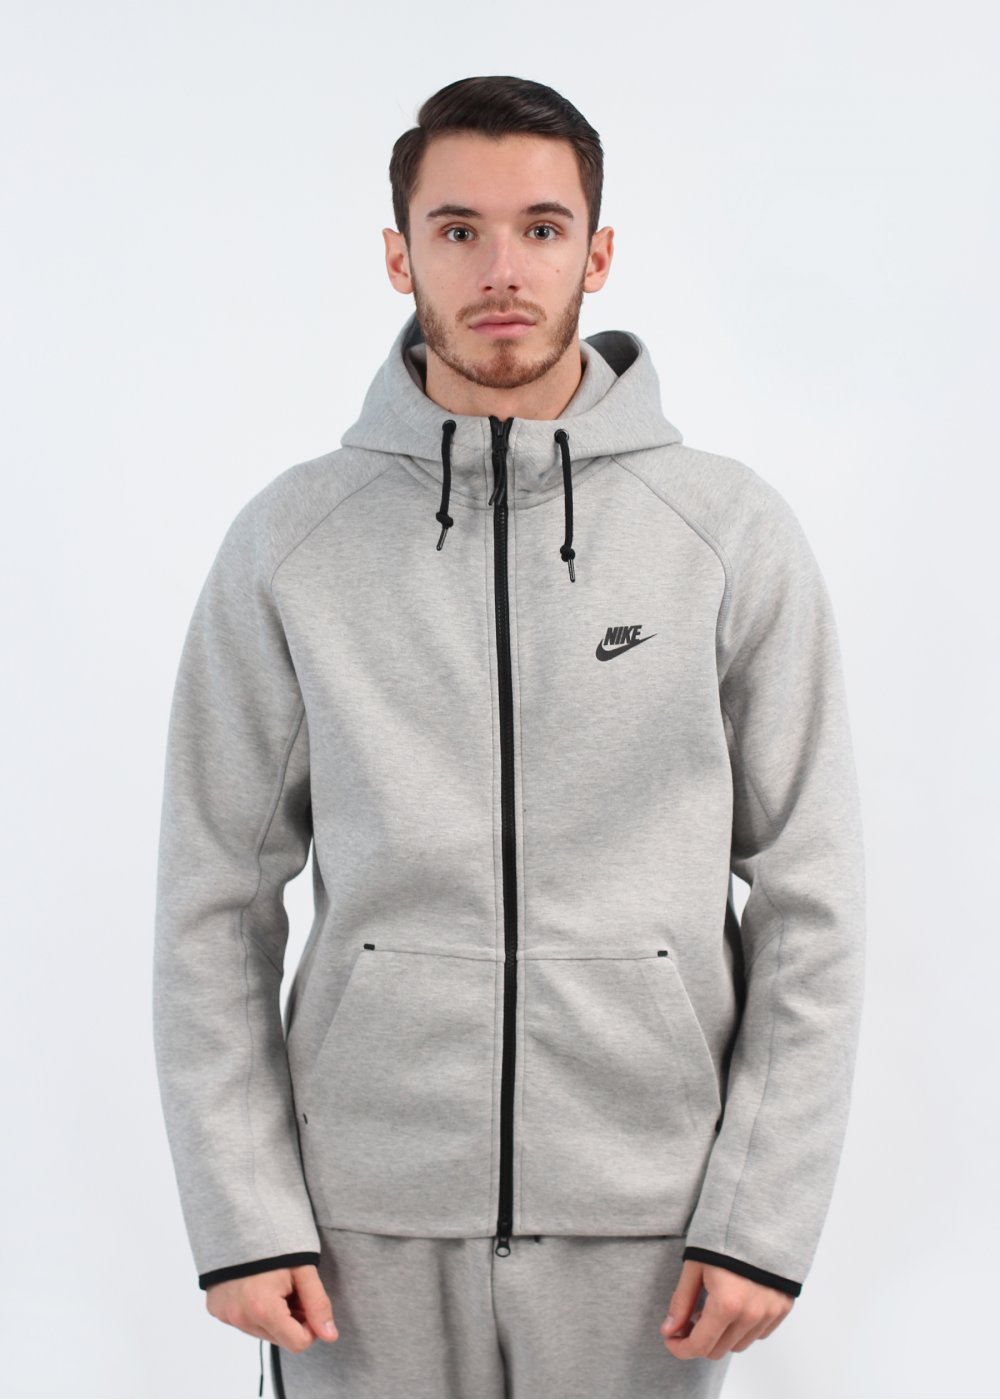 Nike Tech Fleece Hooded Track Jacket - Grey